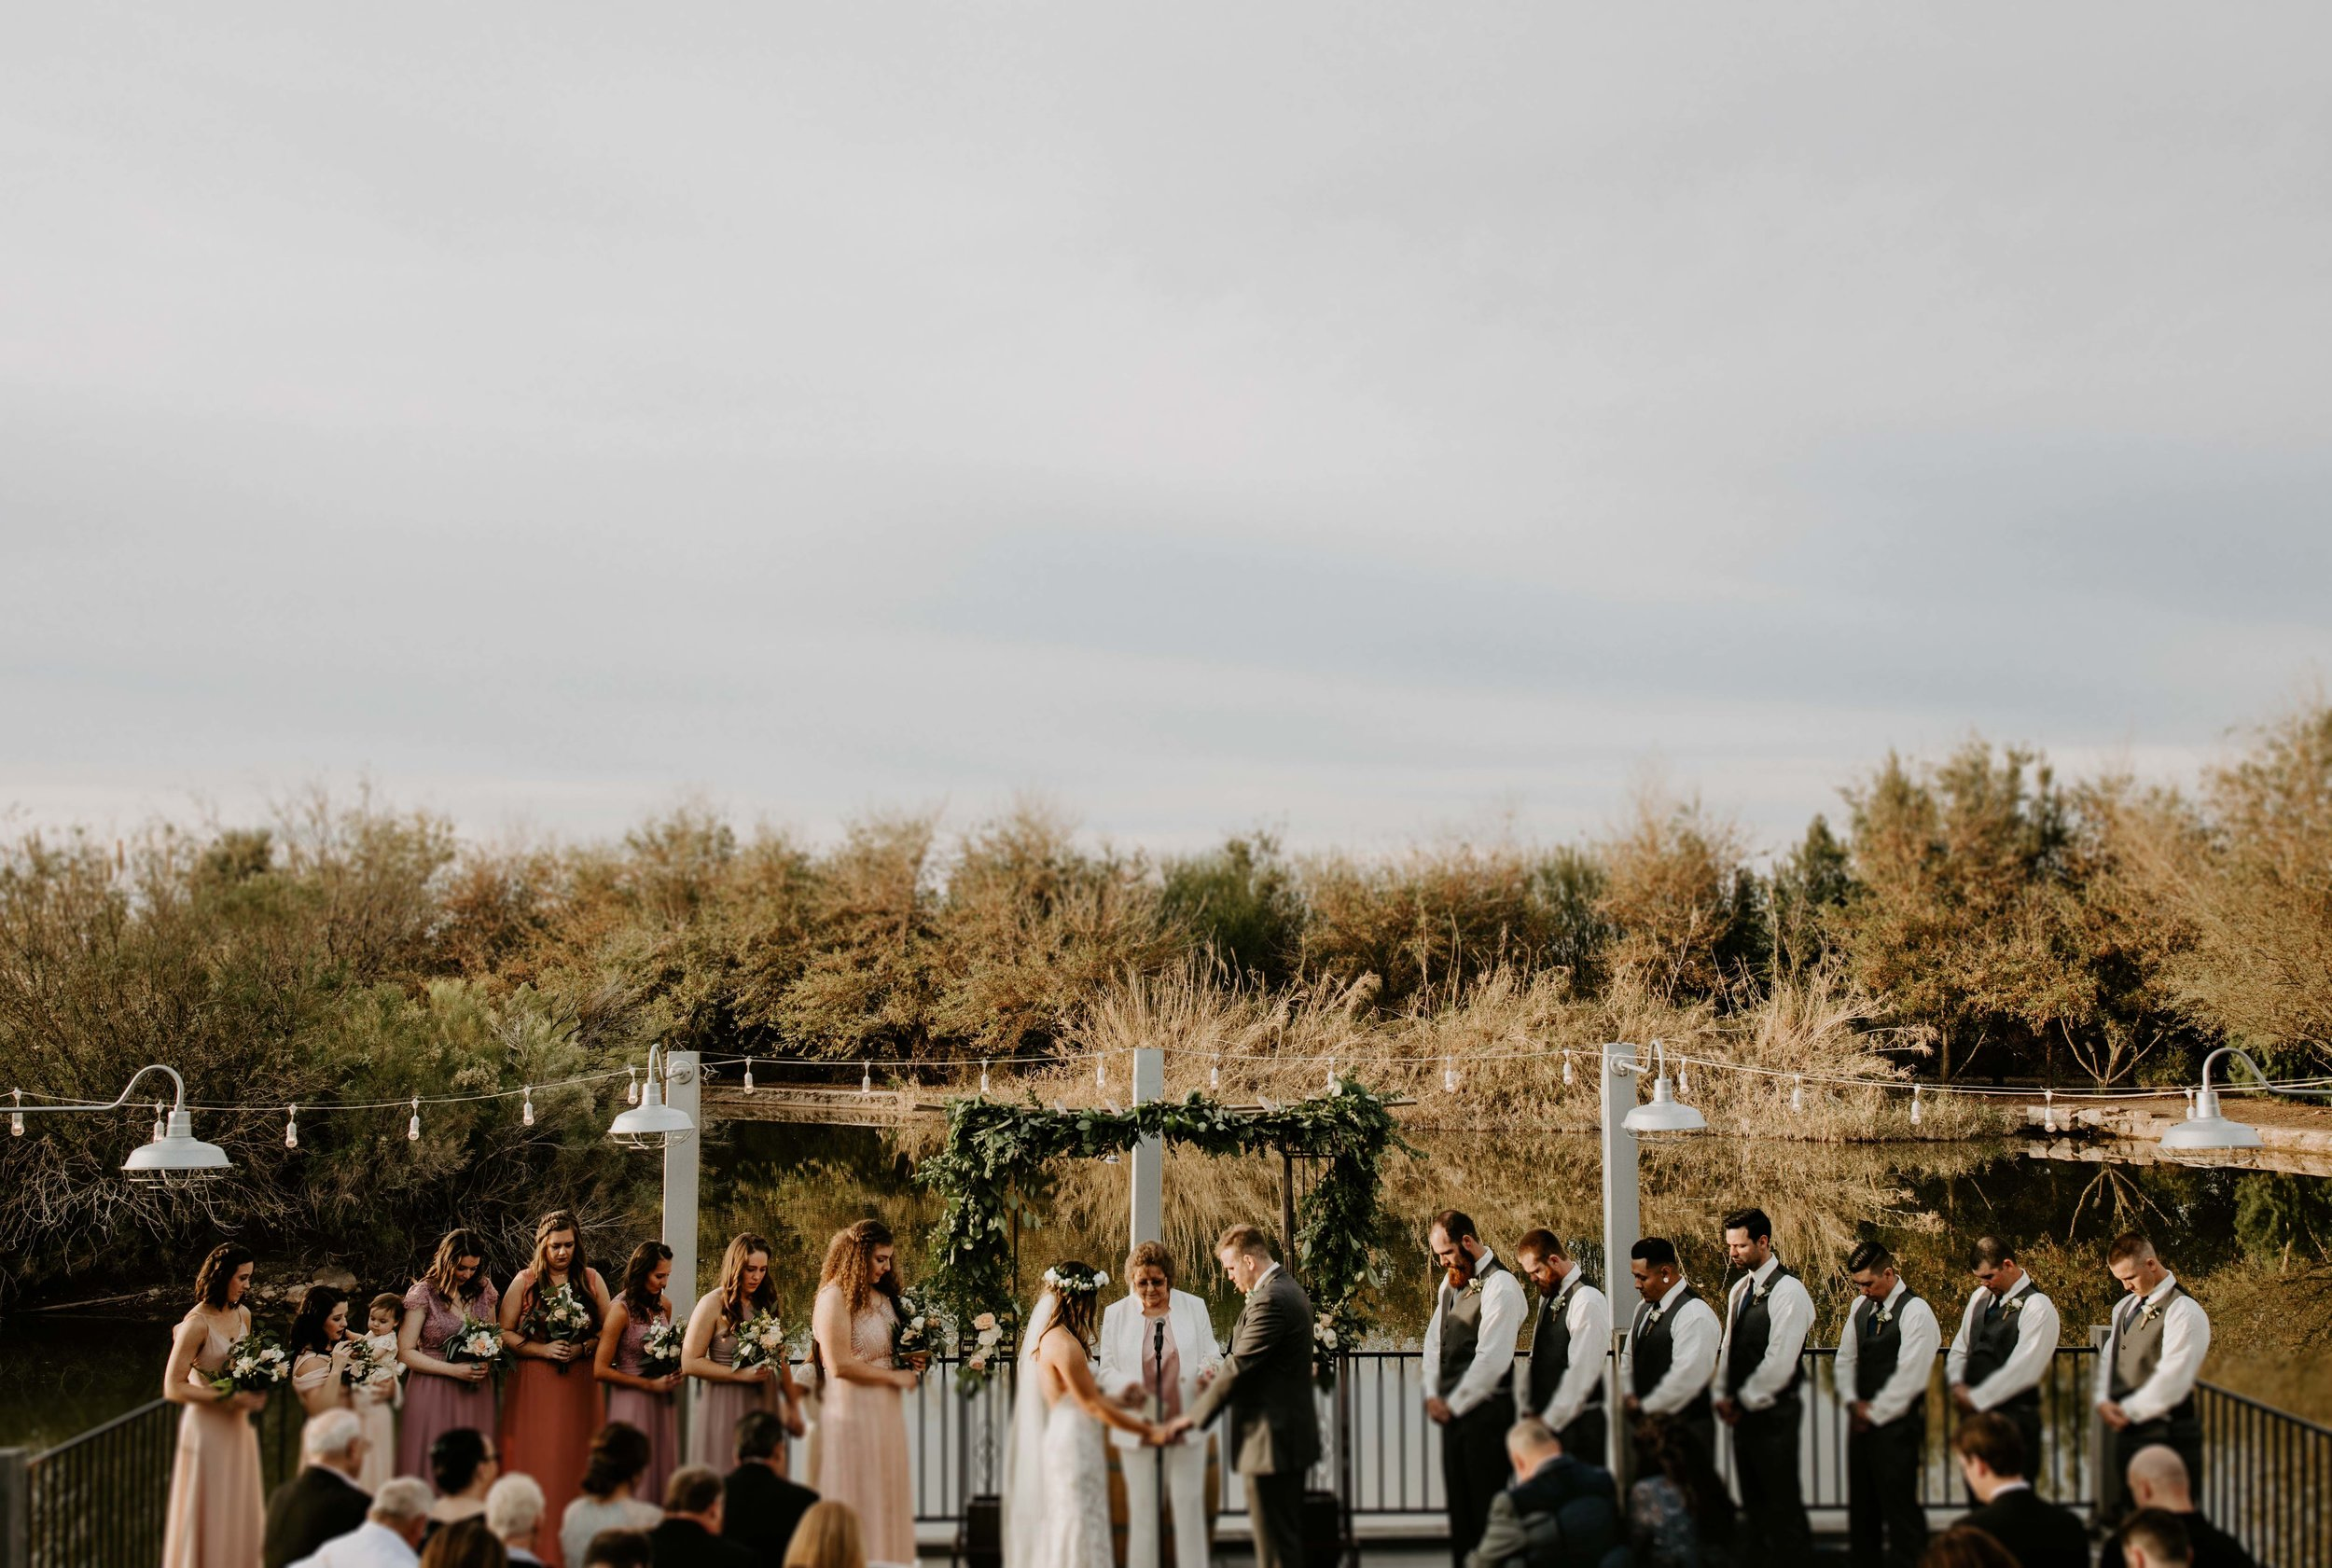 Boat dock on the lake ceremony space at Windmill Winery wedding venue in Arizona